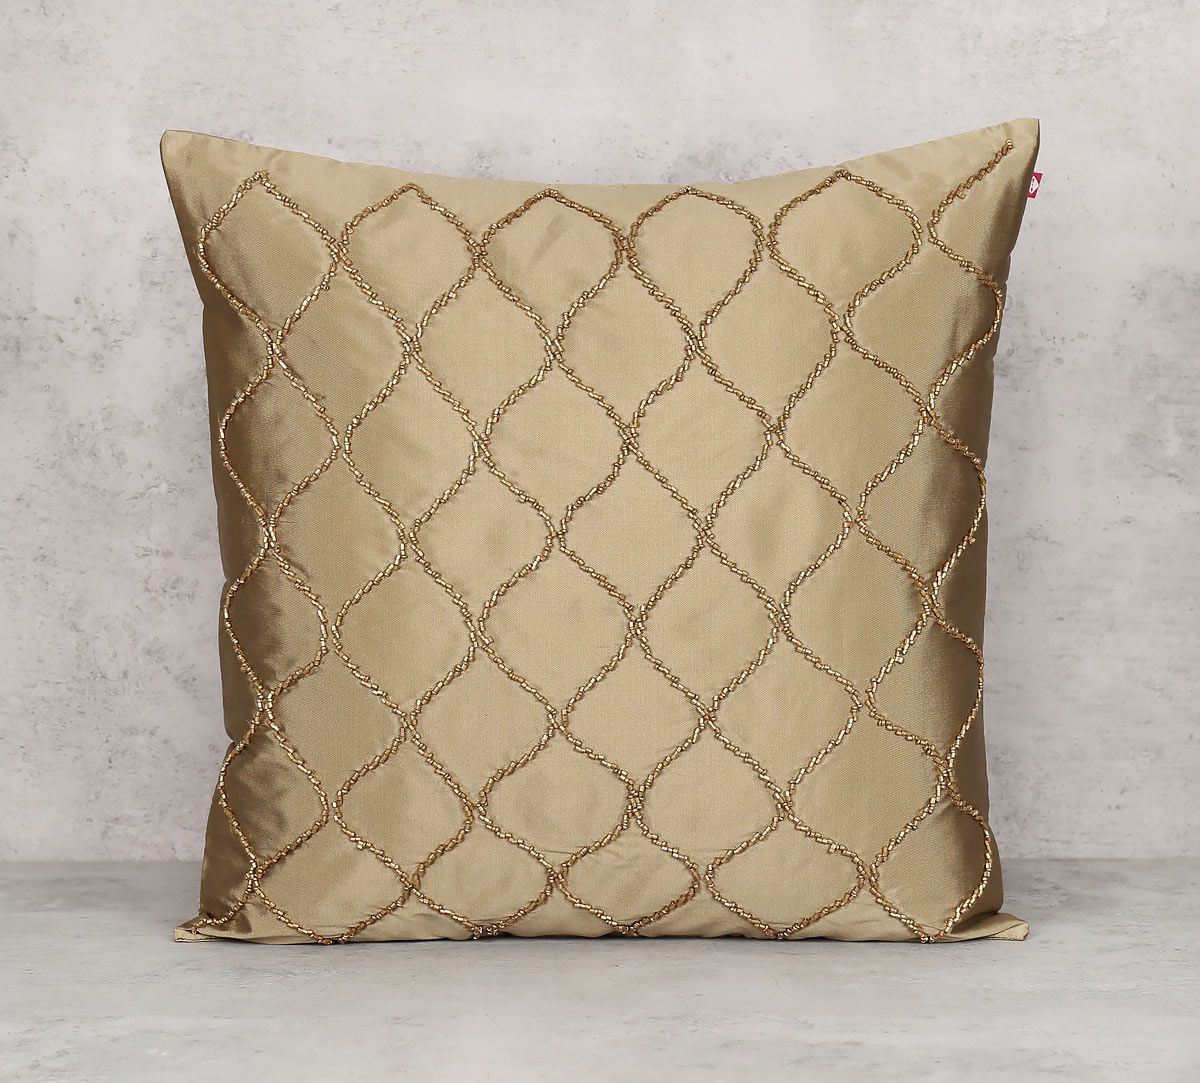 India Circus Gold Bead Beige Cushion Cover